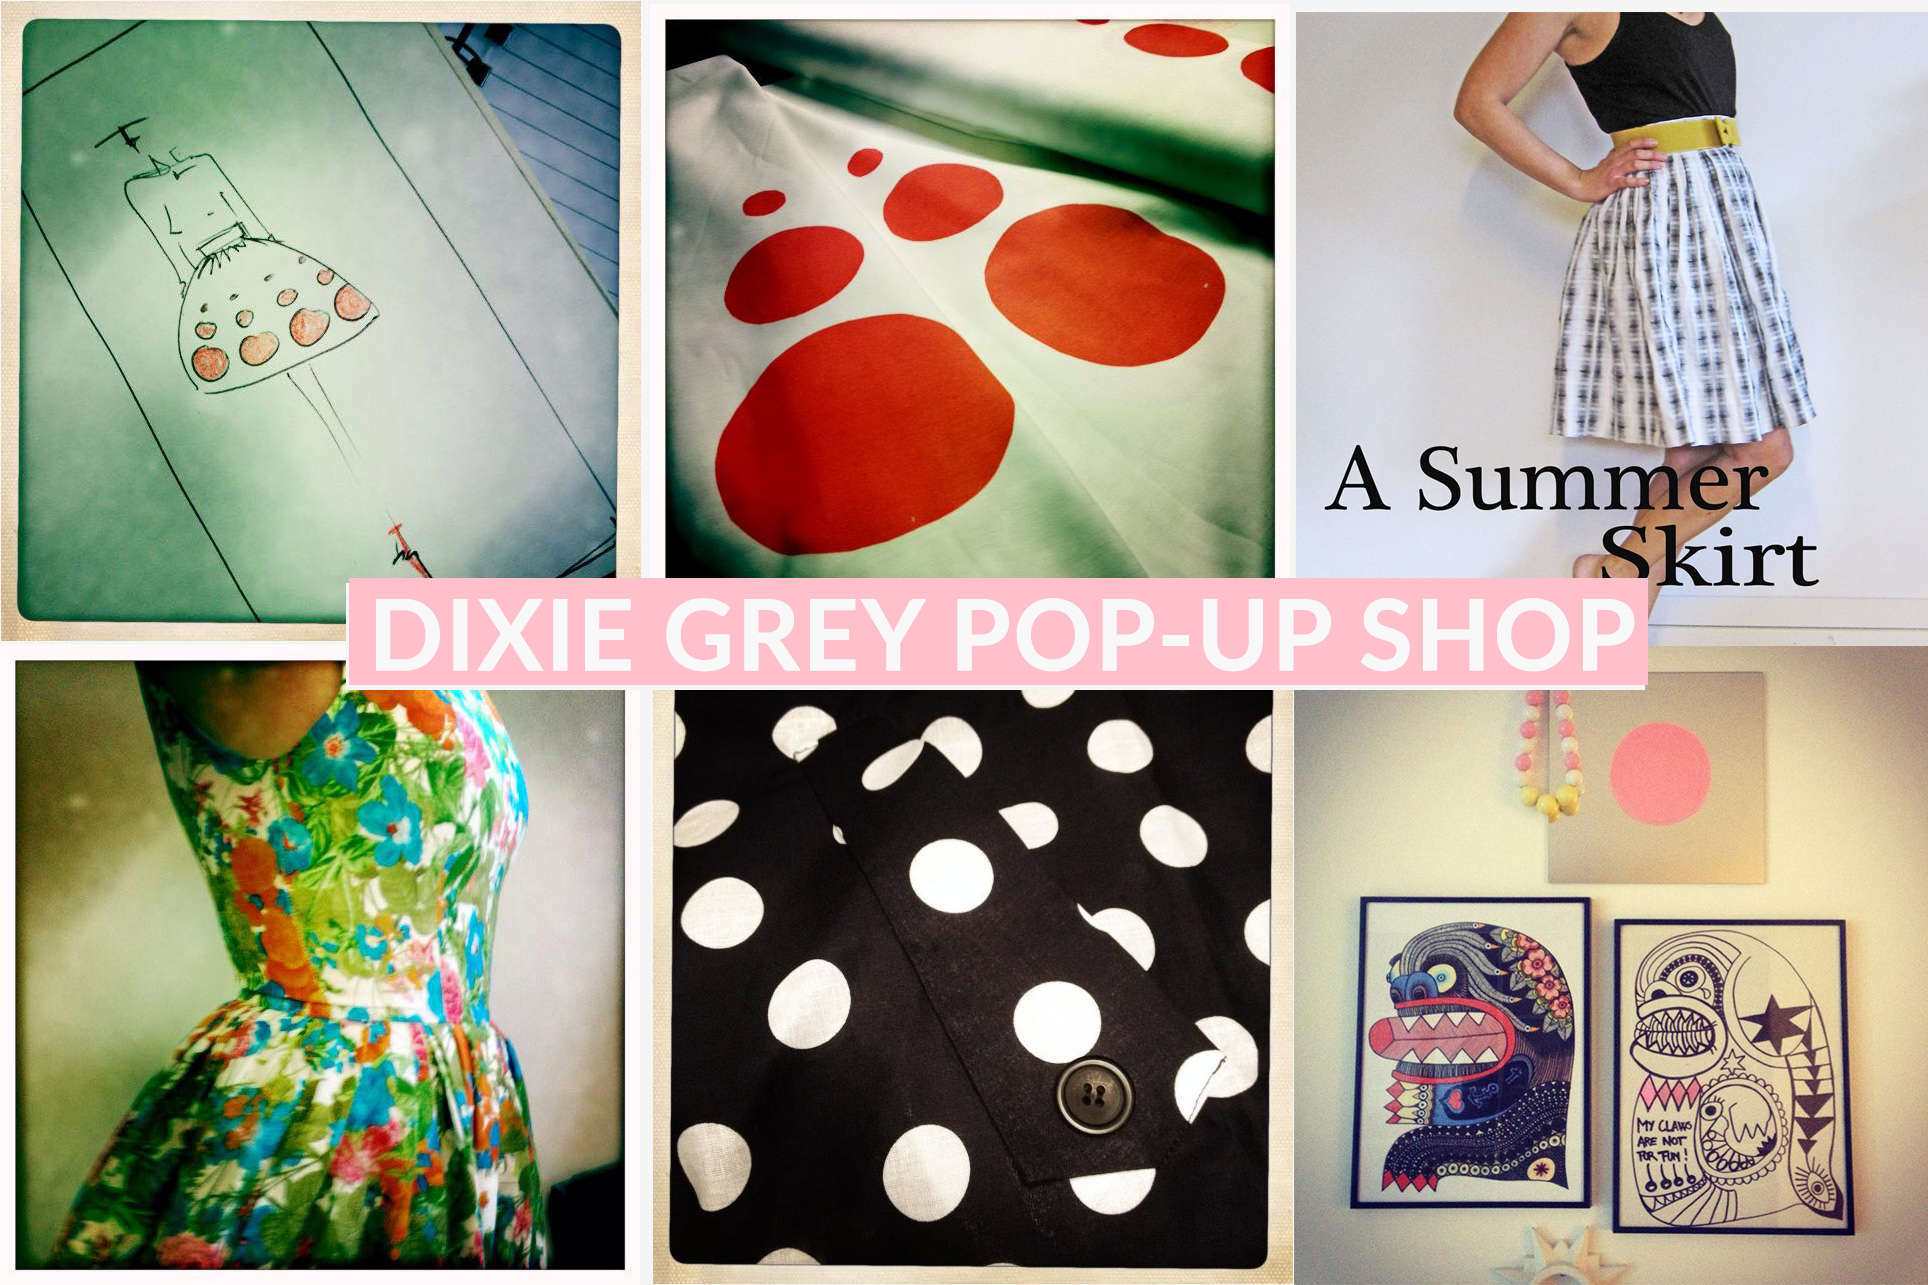 Artists formerly known as Dixie Grey pop-up shop